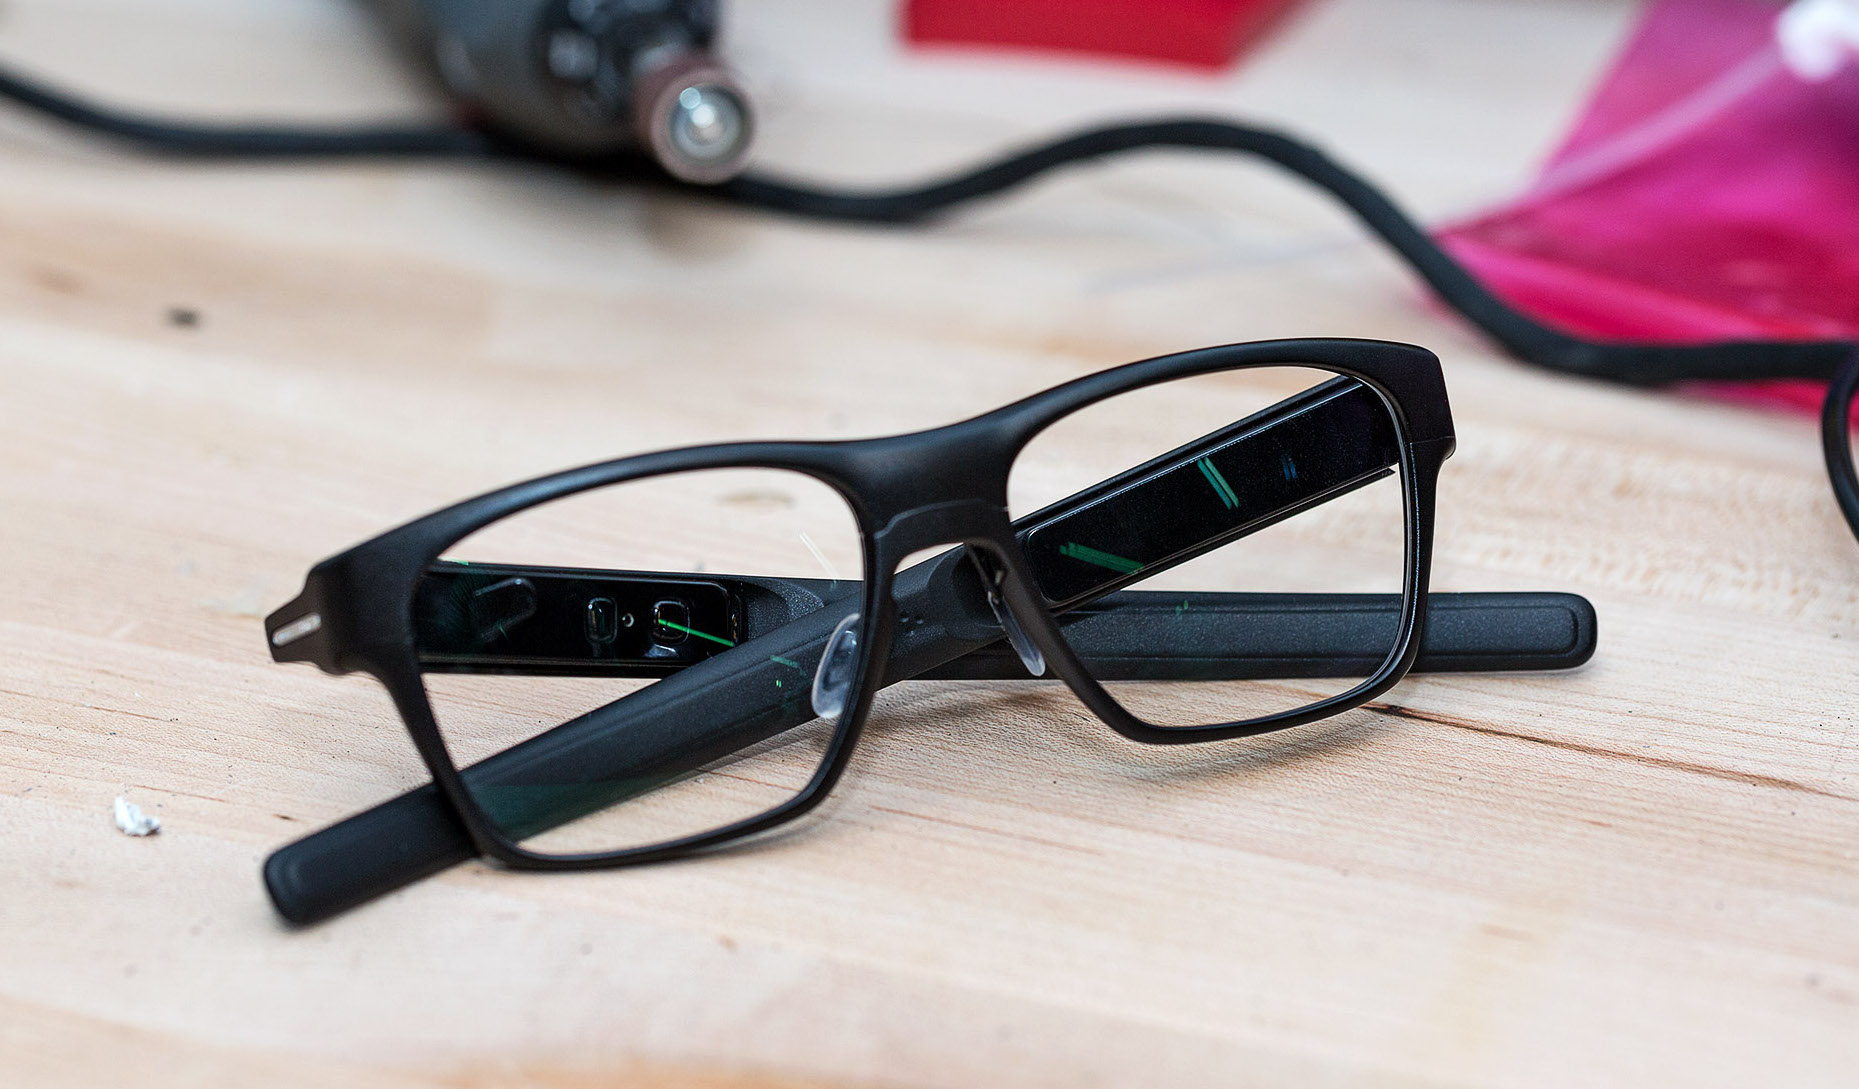 Intel's new Vaunt AR smart glasses are almost indistinguishable from regular glasses